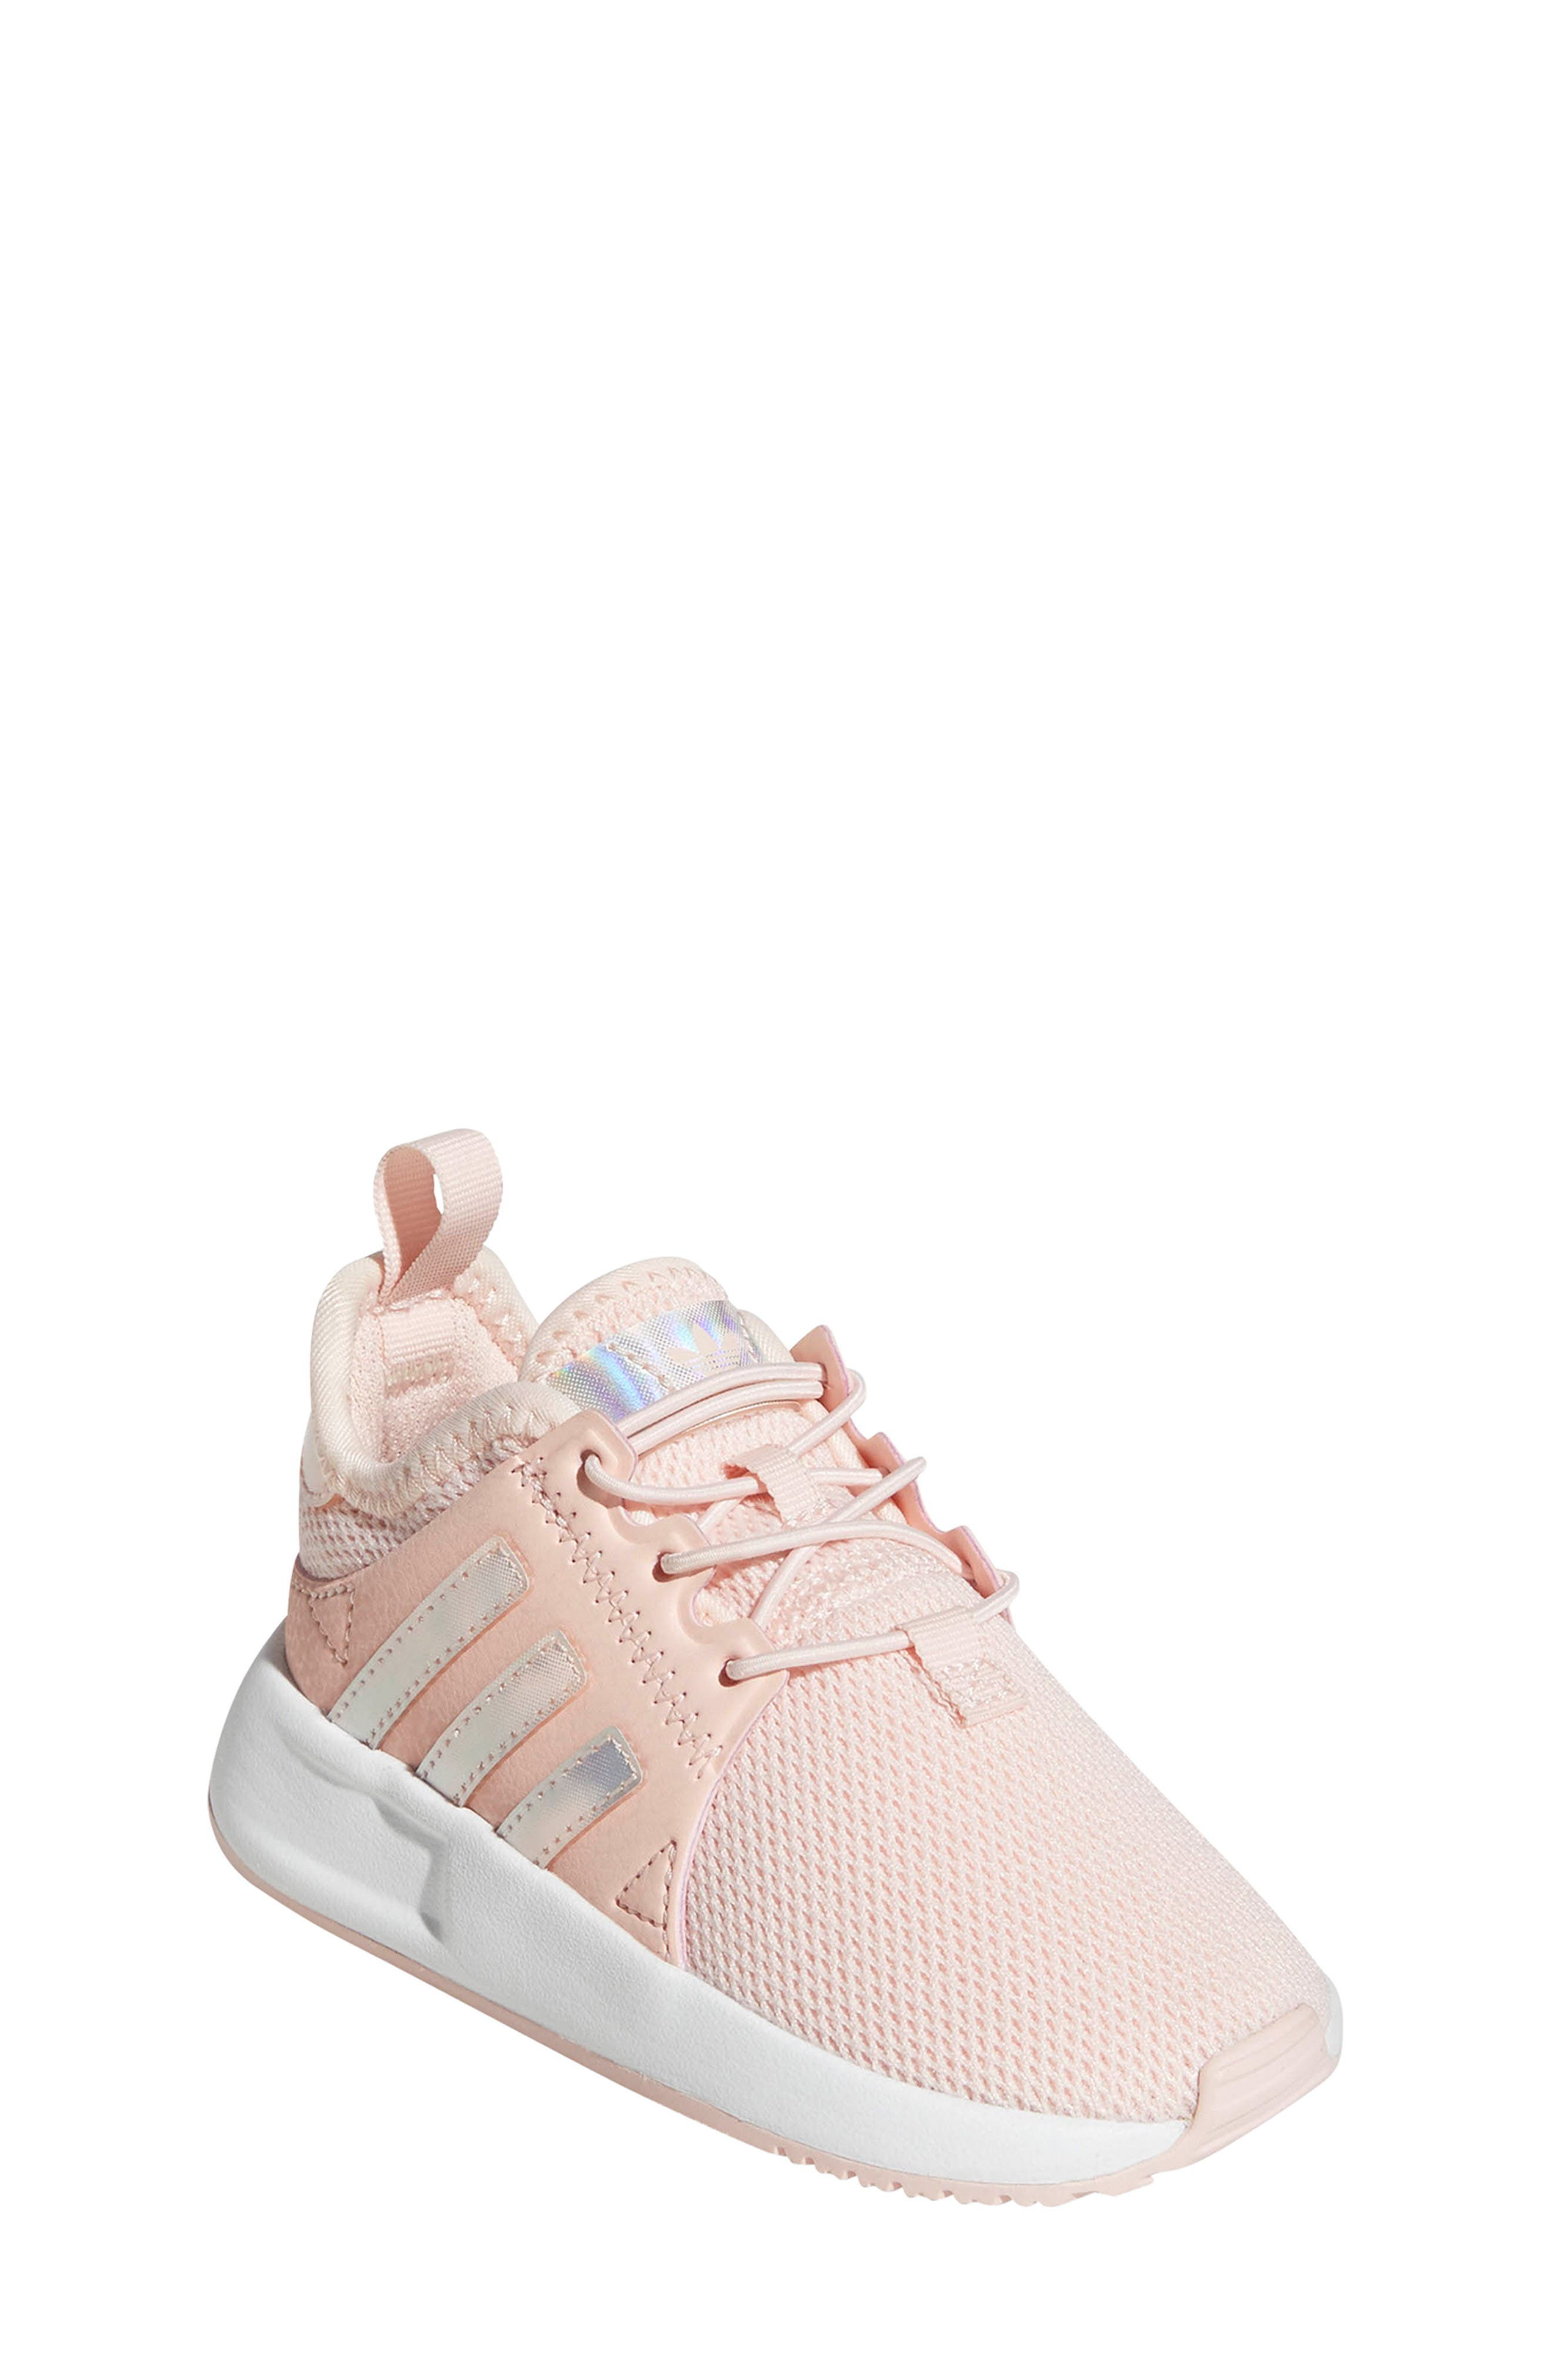 X_PLR Sneaker,                         Main,                         color, ICE PINK/ WHITE